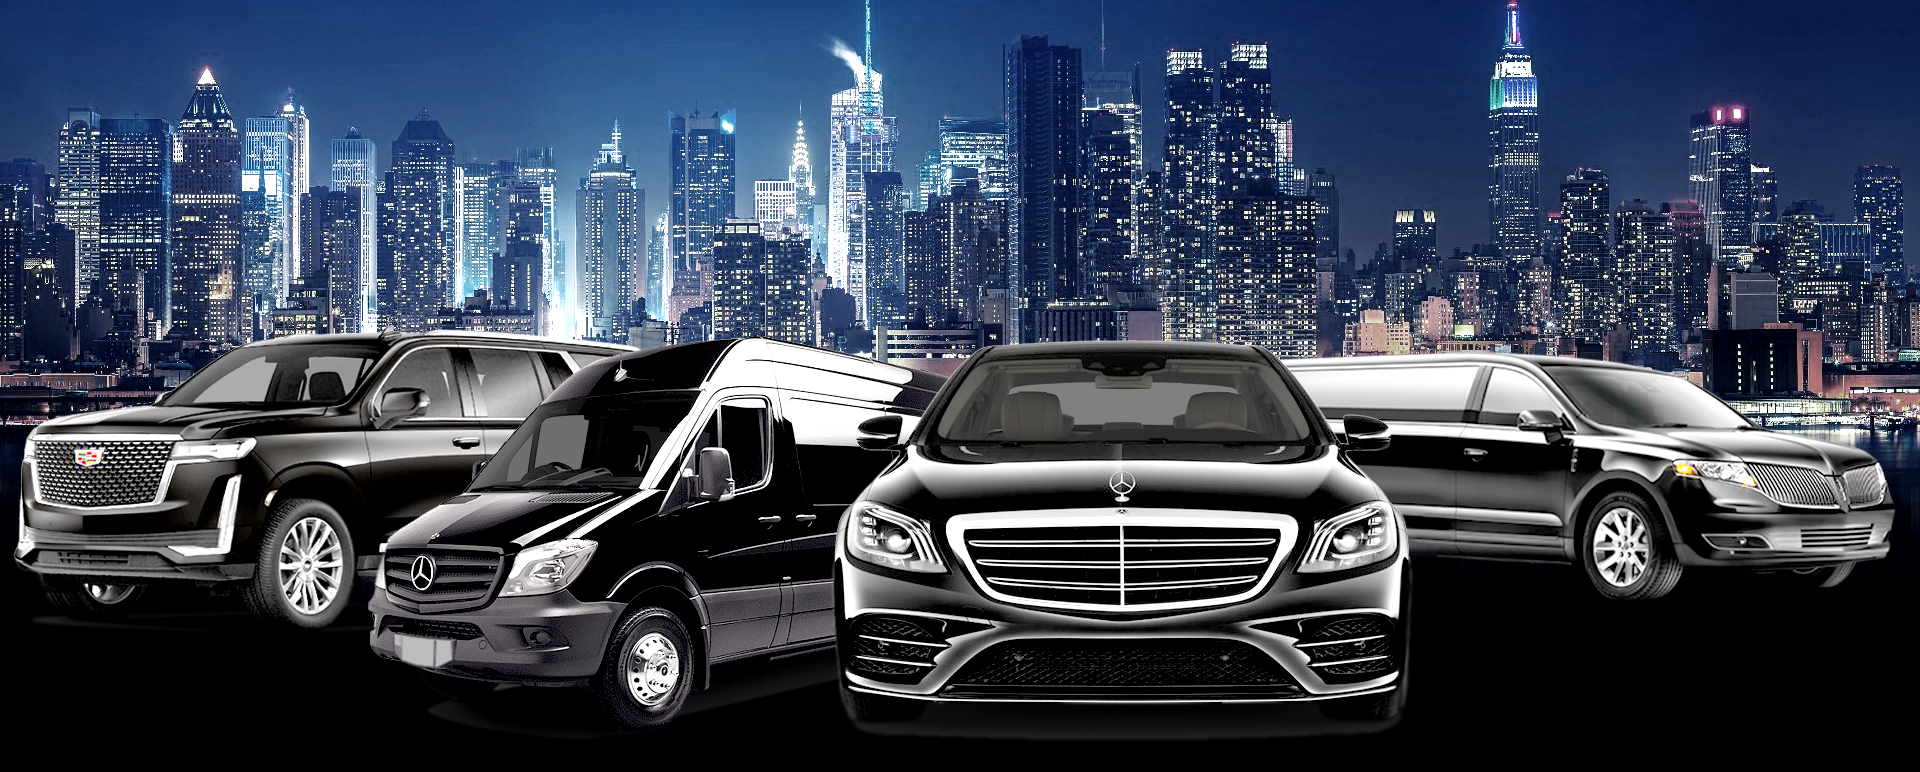 limo company owner connected - HD1920×772